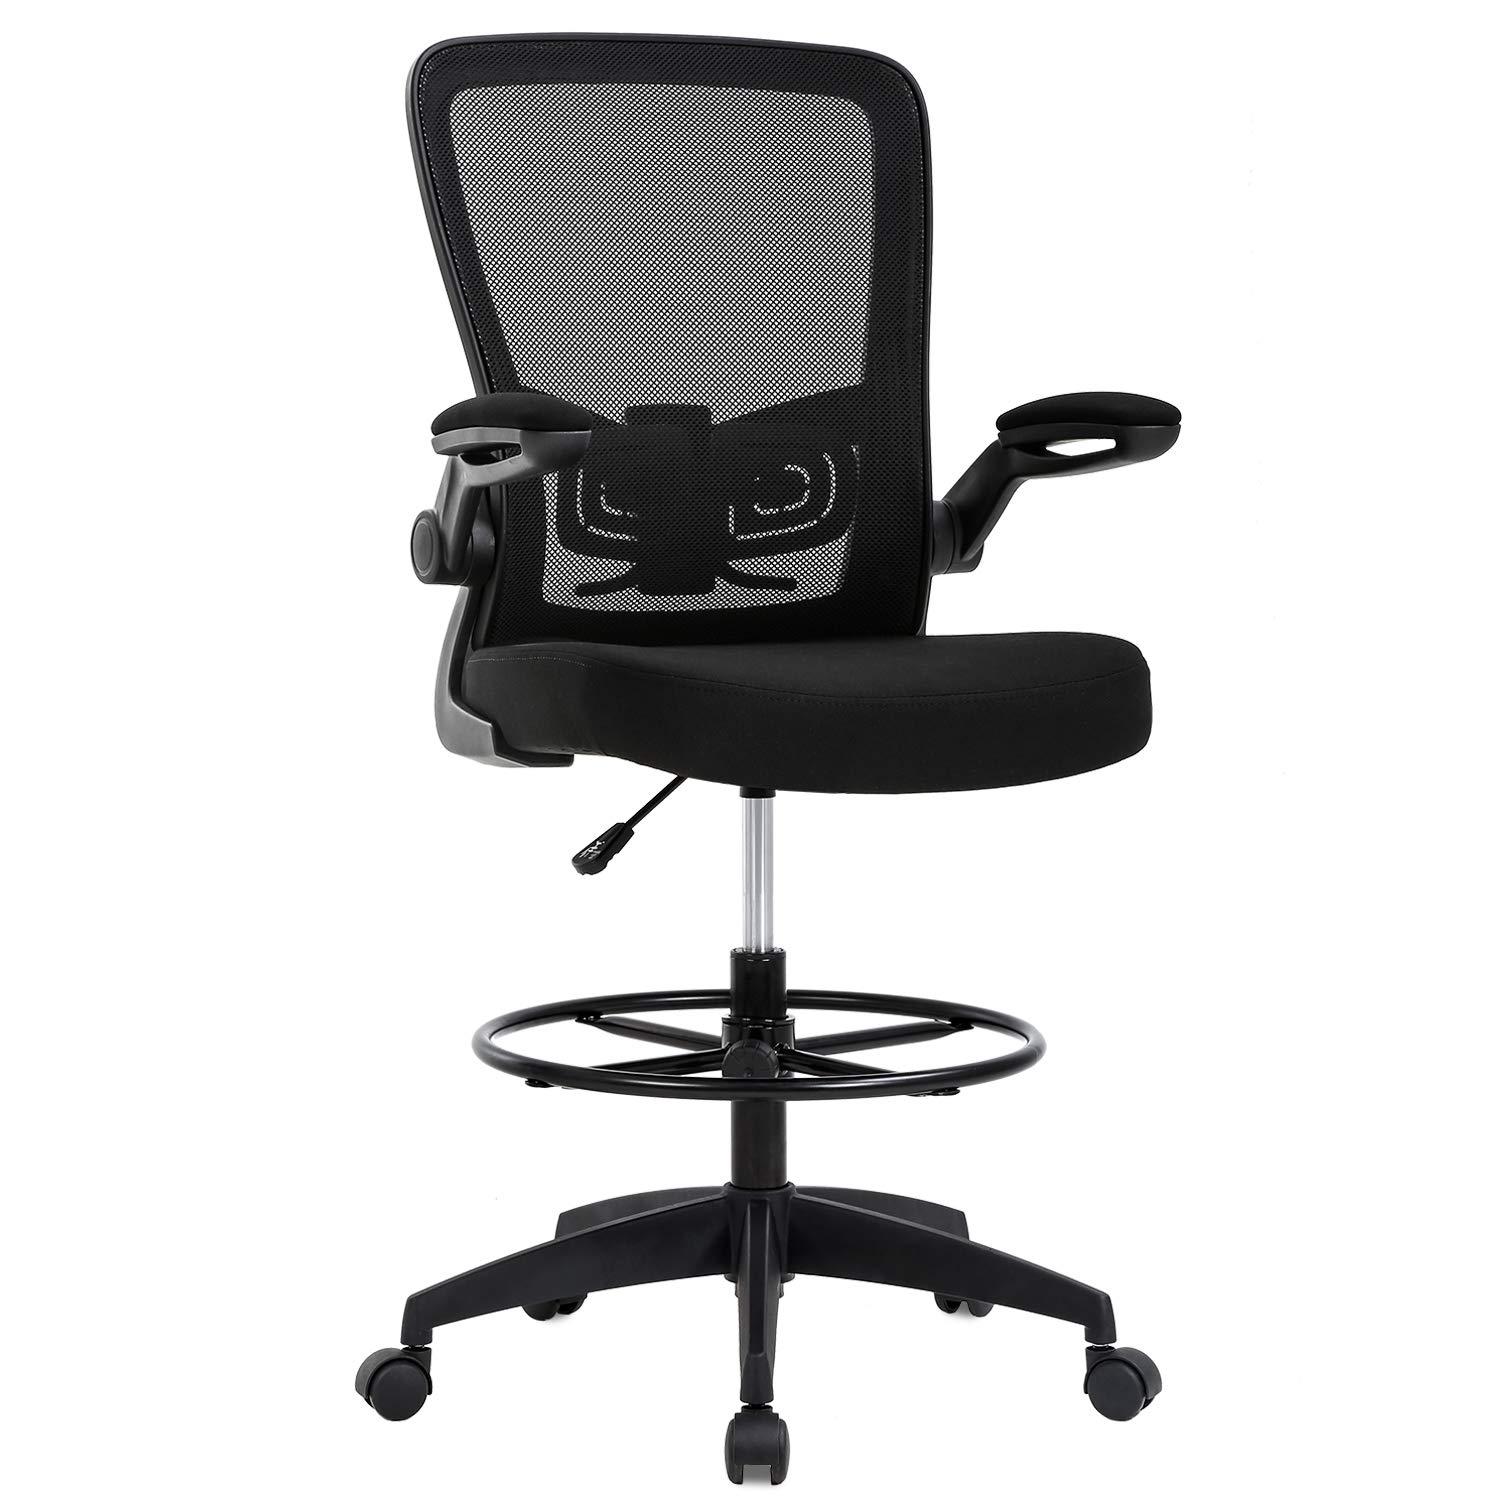 BestOffice Adjustable Height with Lumbar Support Flip Up Arms Footrest Mid Back Task Mesh Desk Chair Computer Chair Drafting Stool for Standing Desk,Black by BestOffice